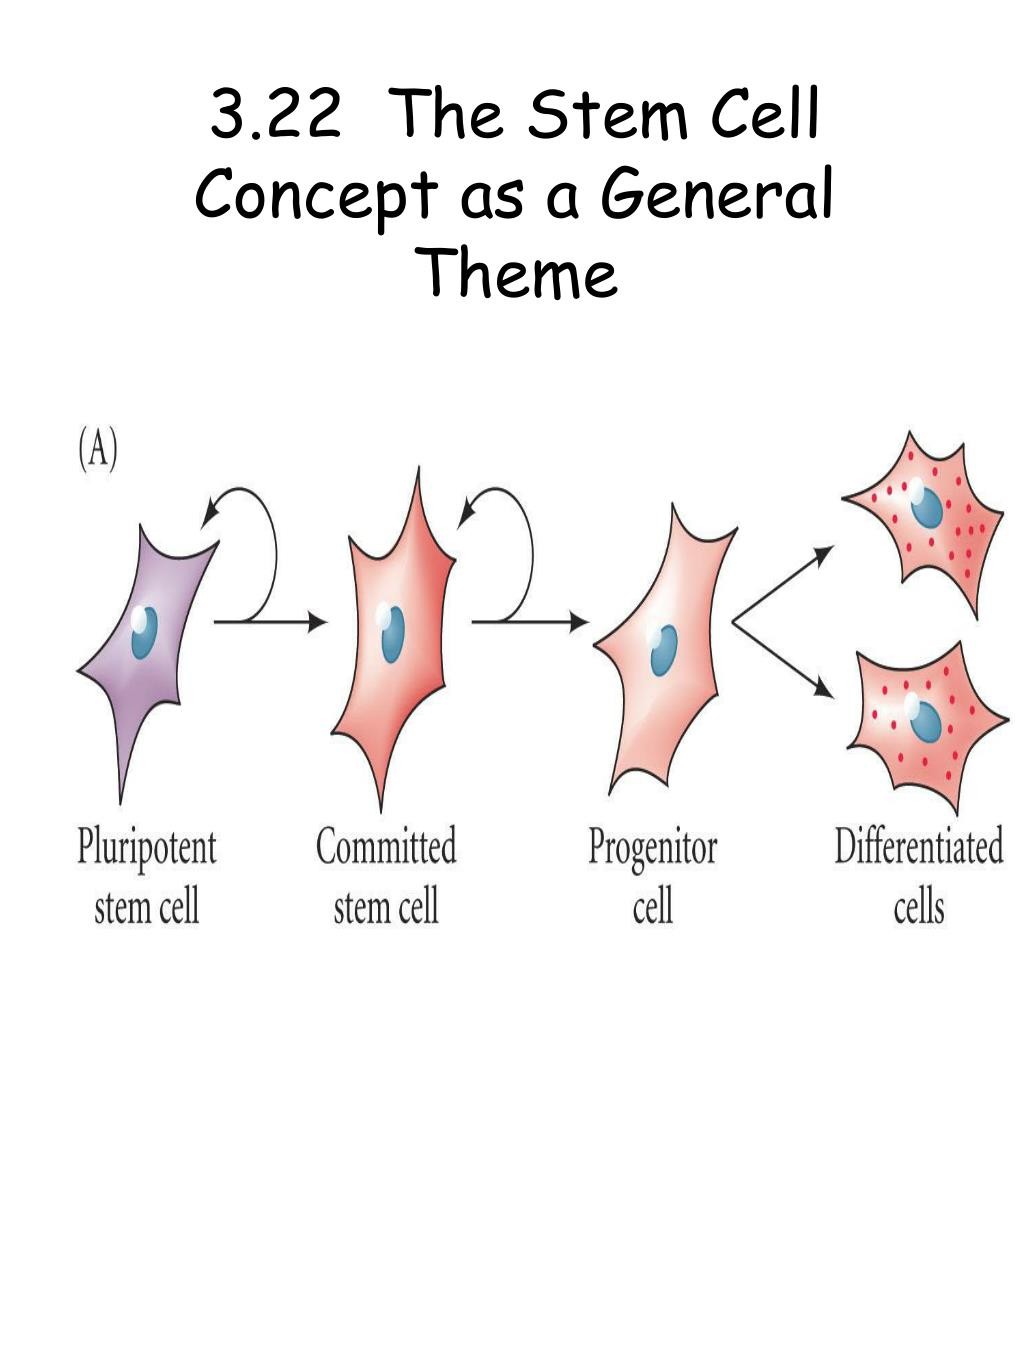 3.22  The Stem Cell Concept as a General Theme